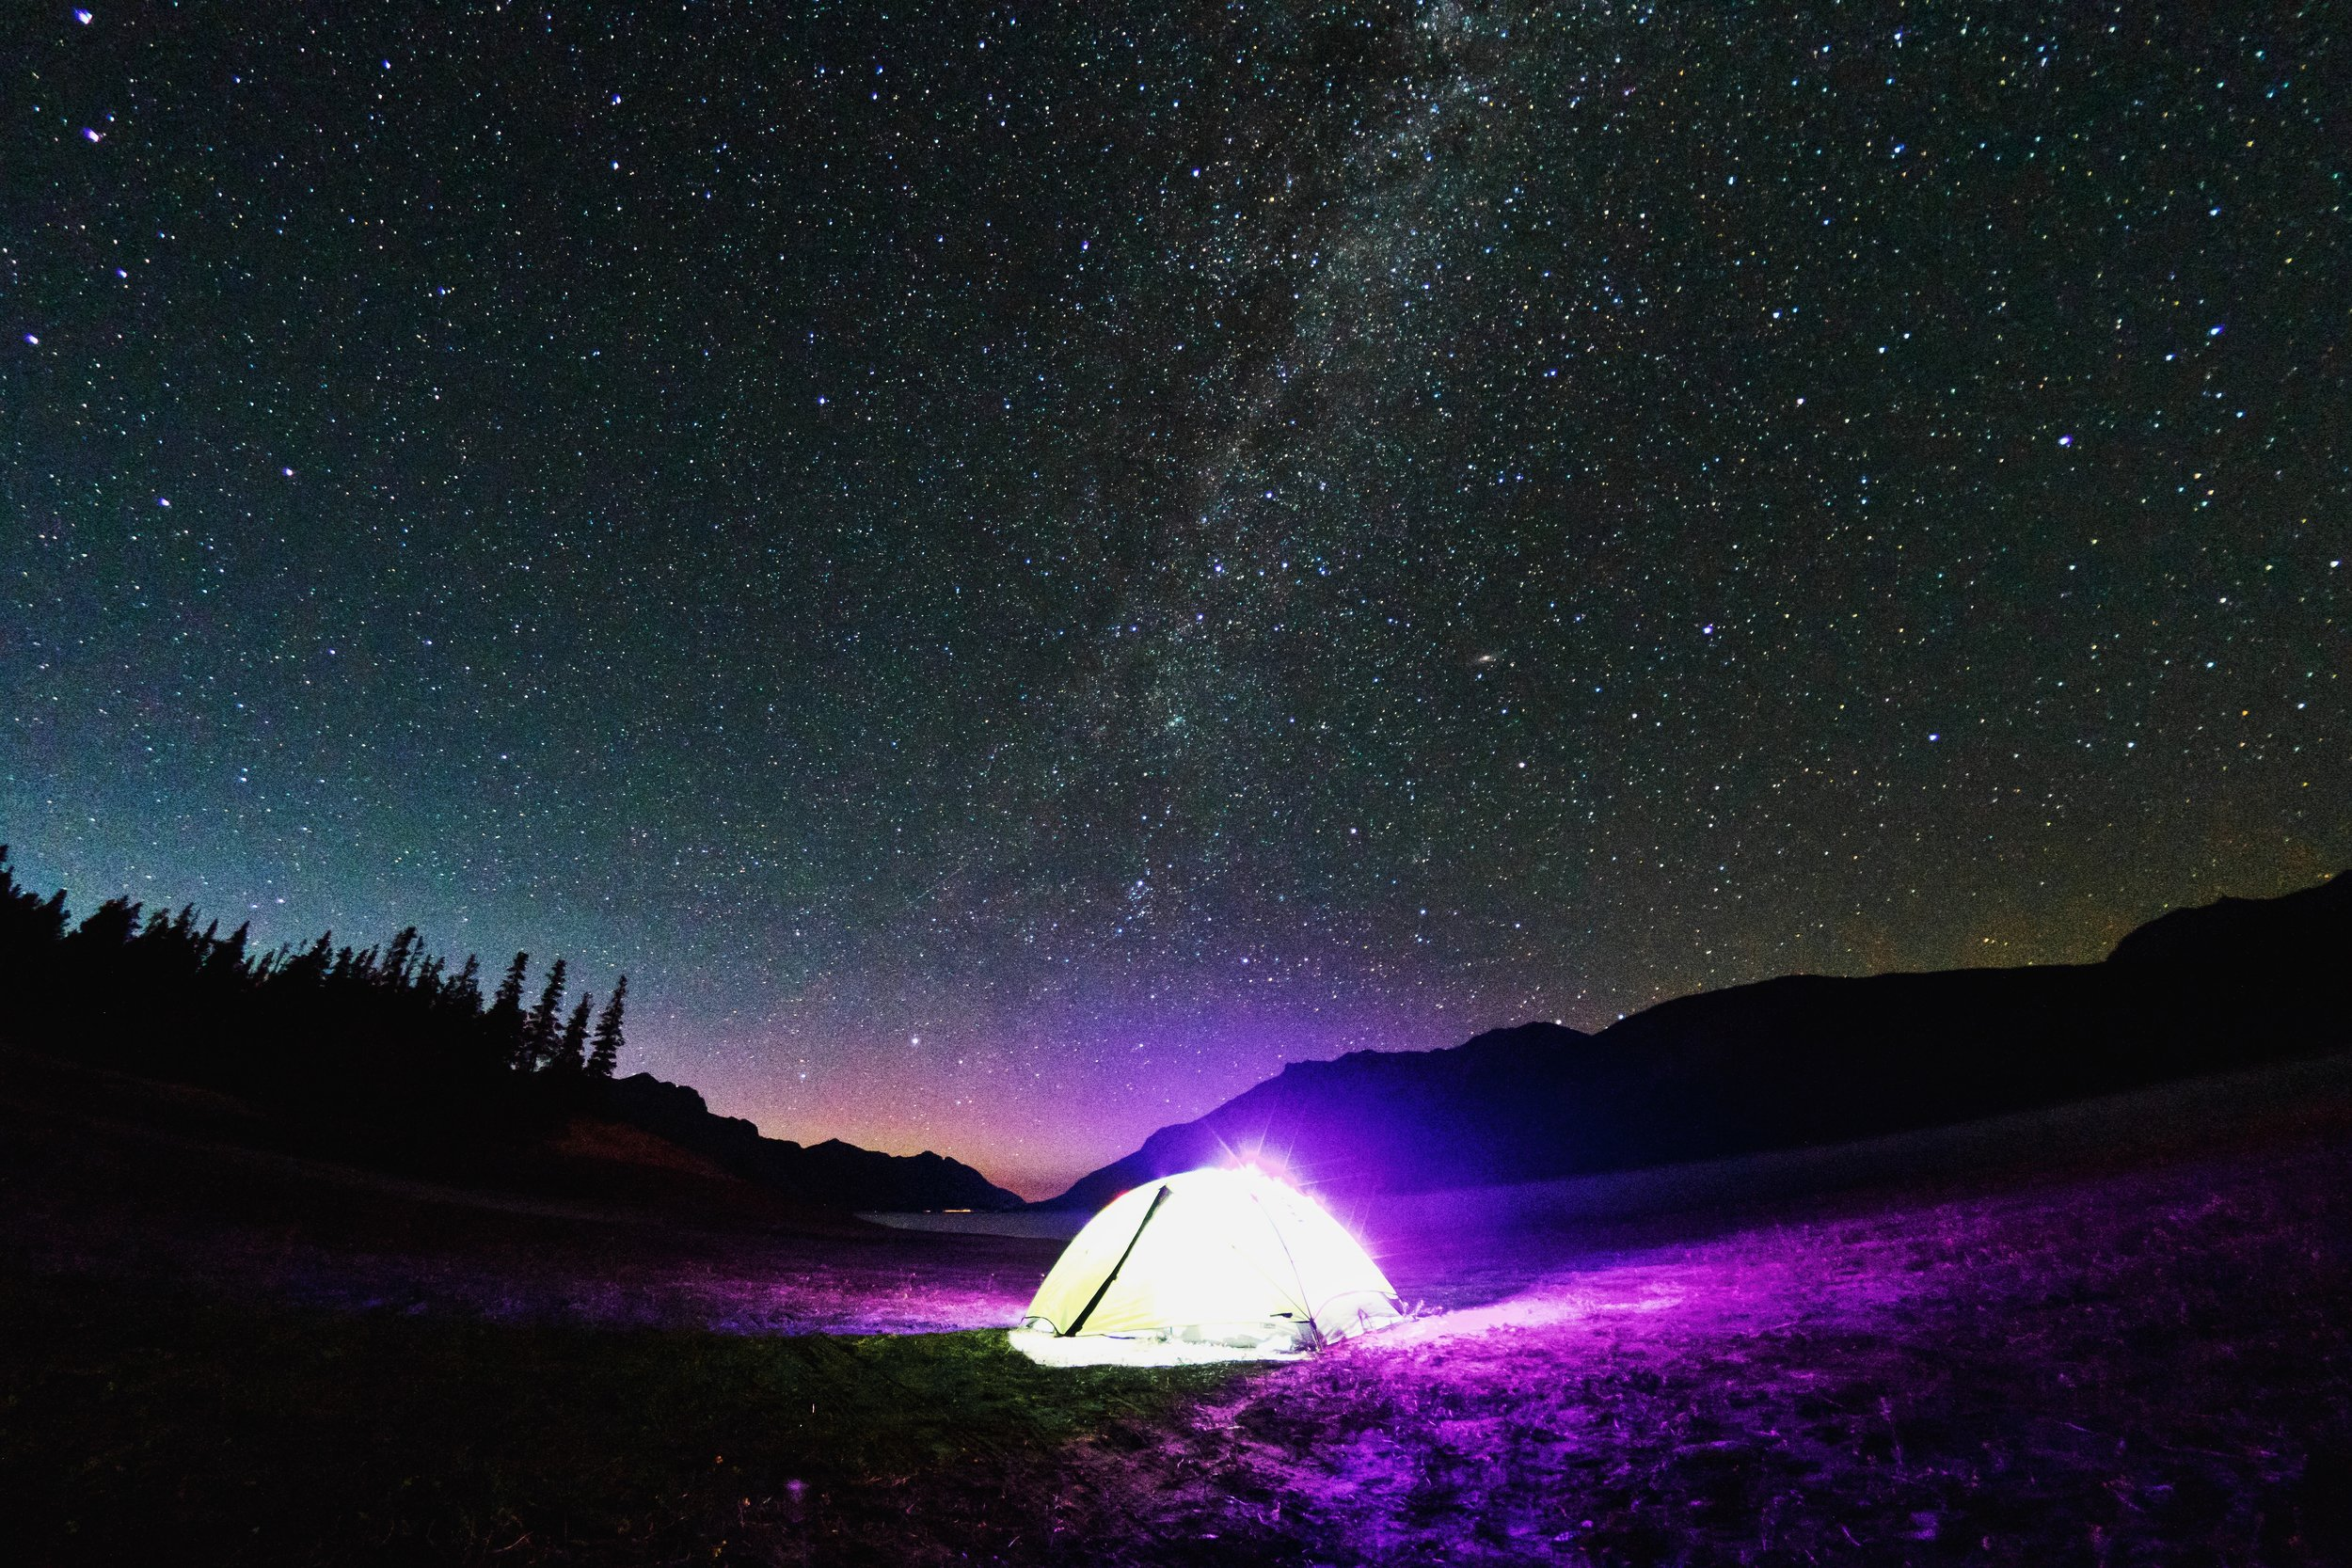 Milky Way over Tent at Abraham Lake - Alberta